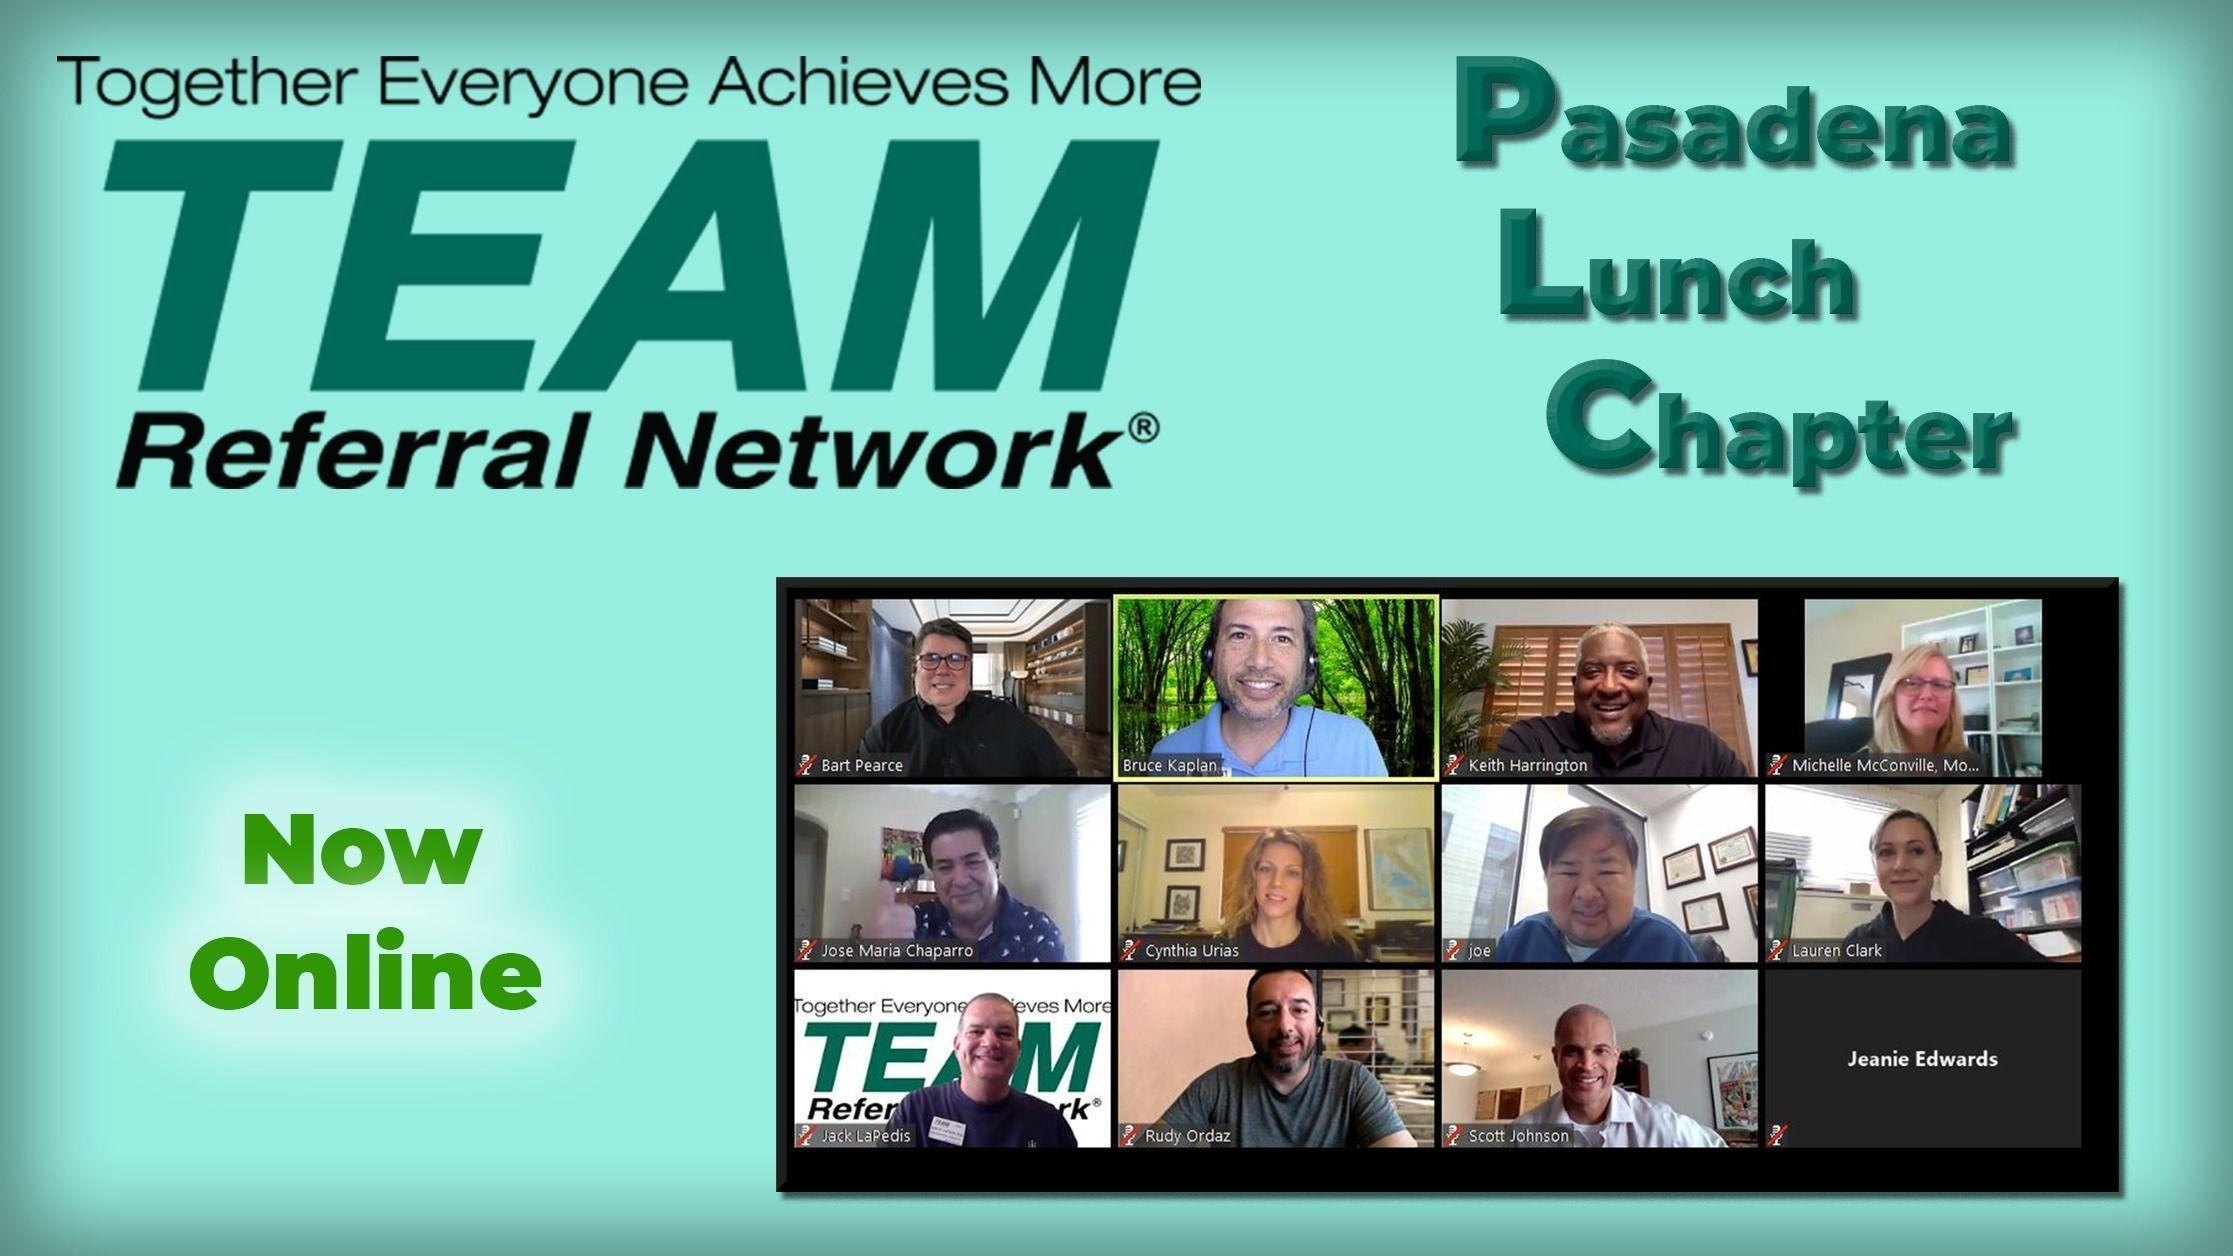 Pasadena Lunch Chapter - Don't Hire a Sales Team - JOIN One!